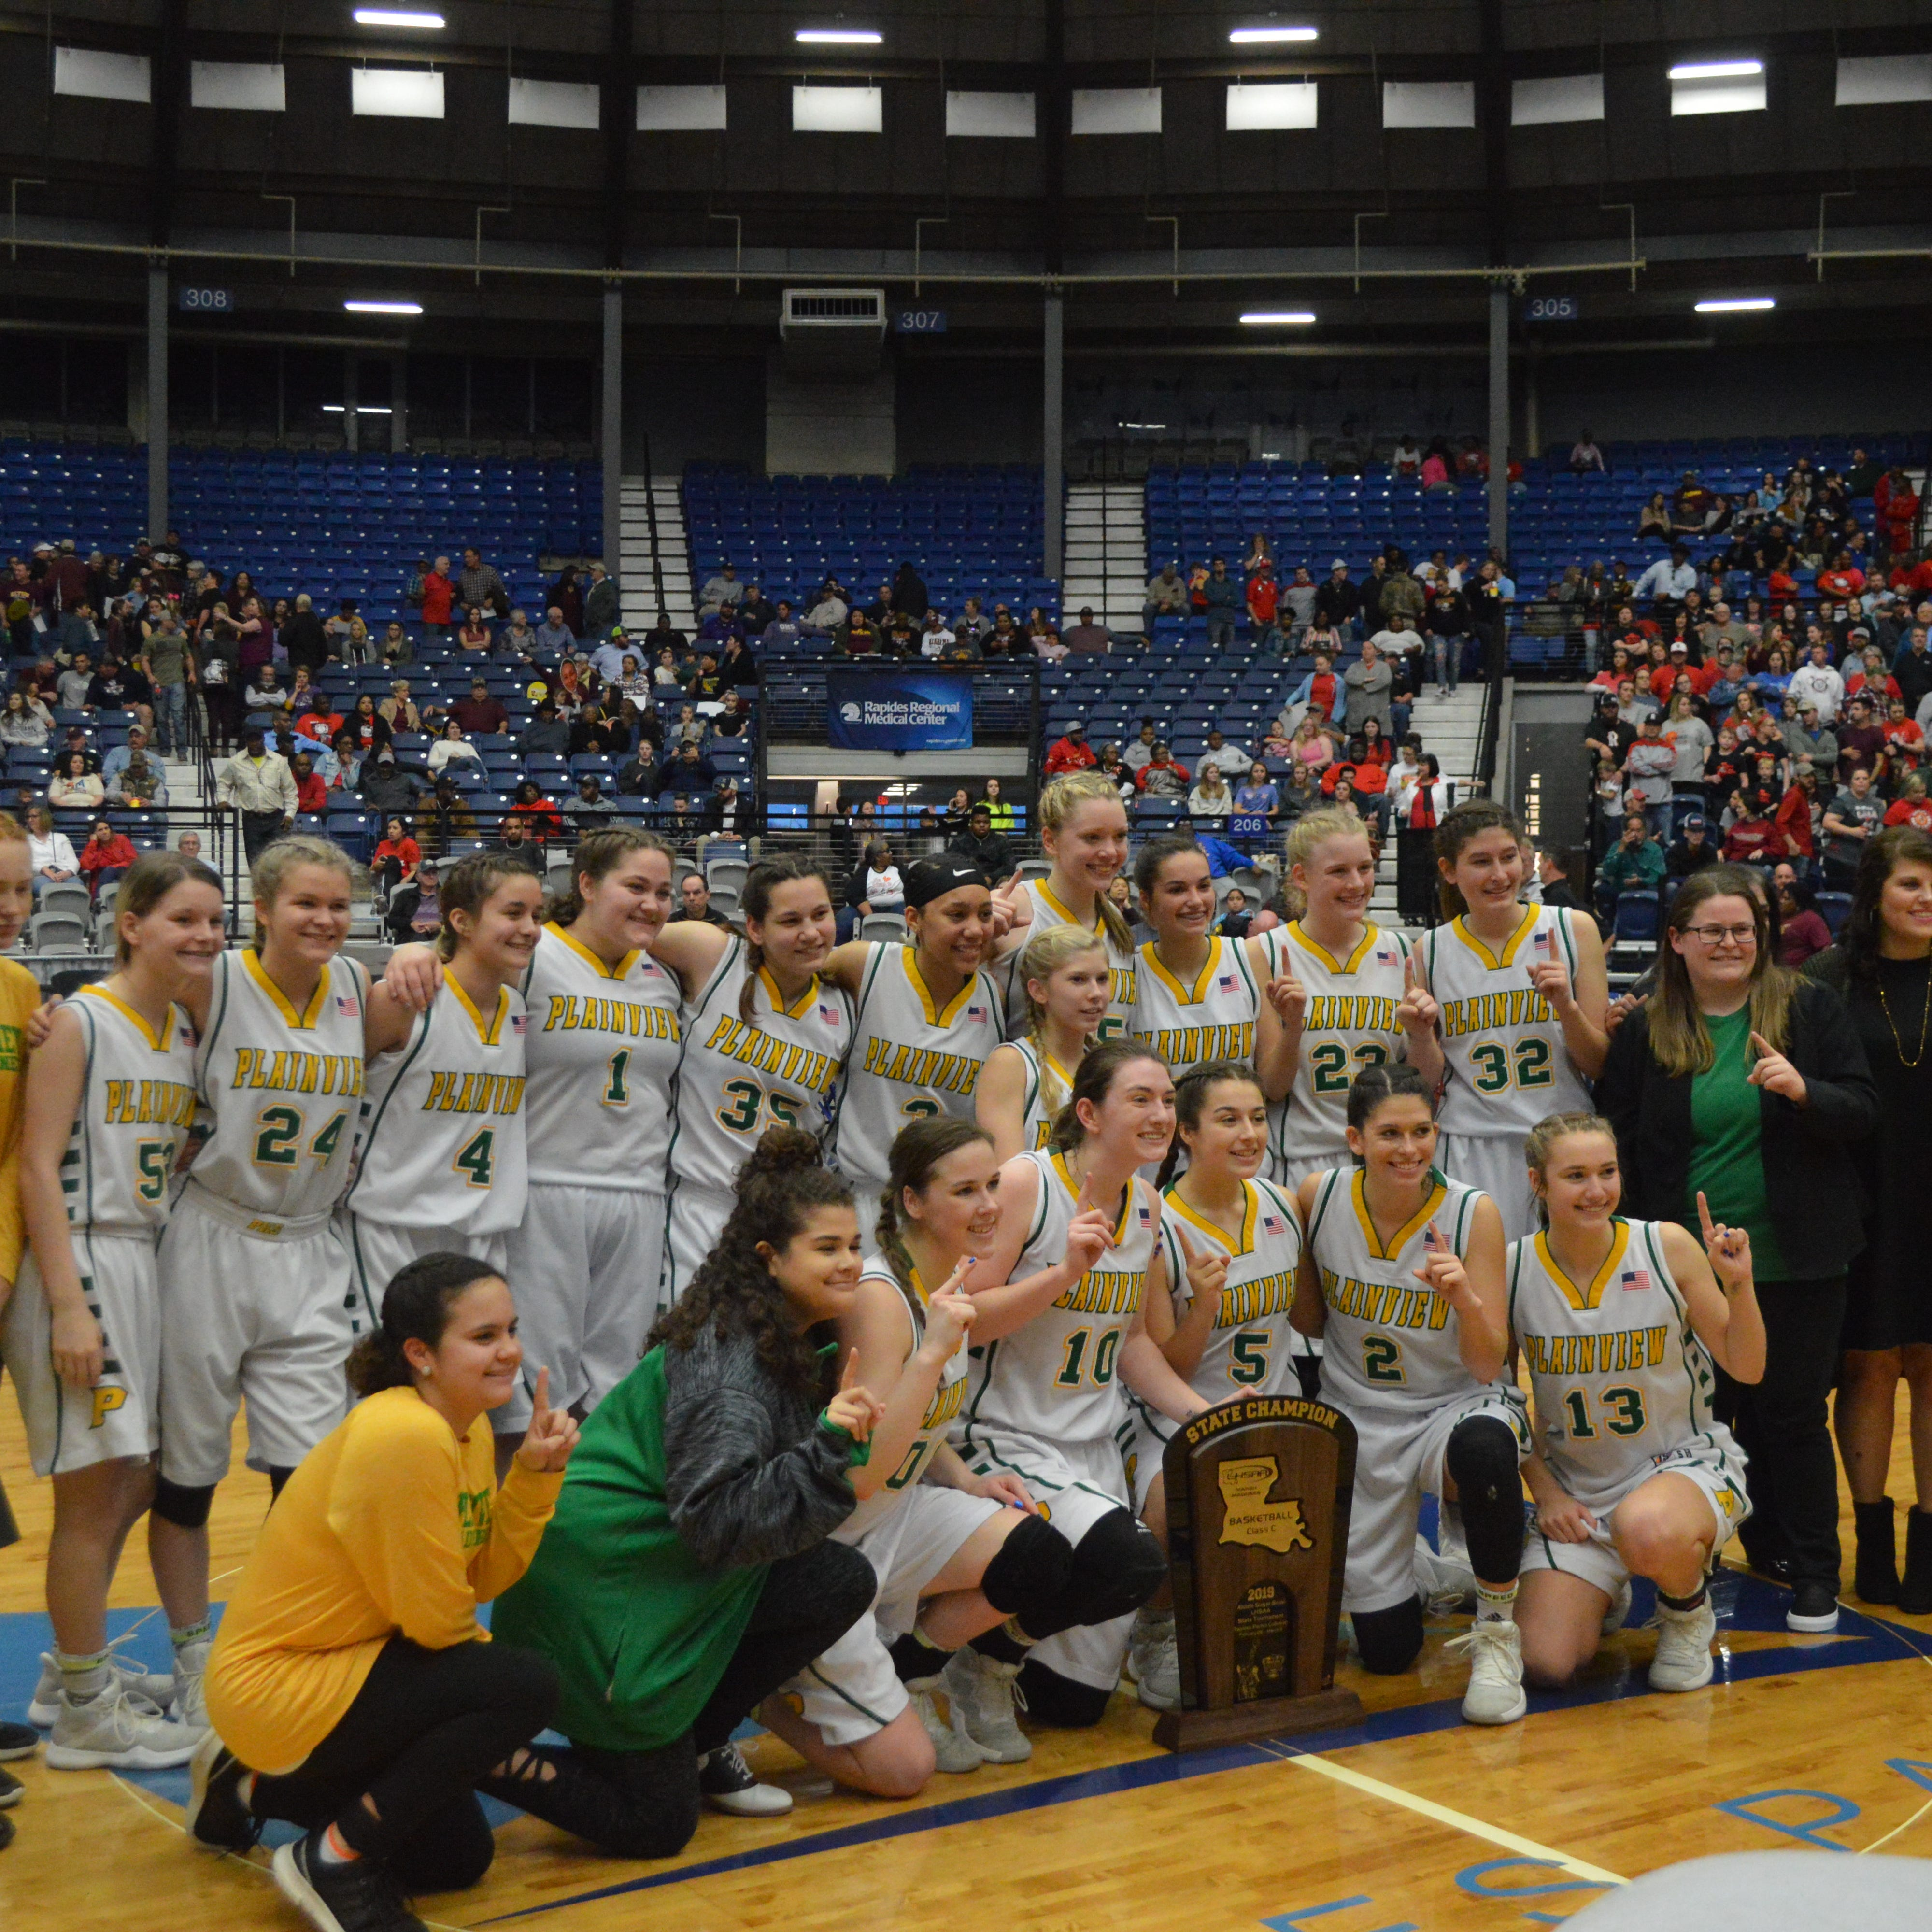 Plainview repeats as Class C champion in dominant fashion